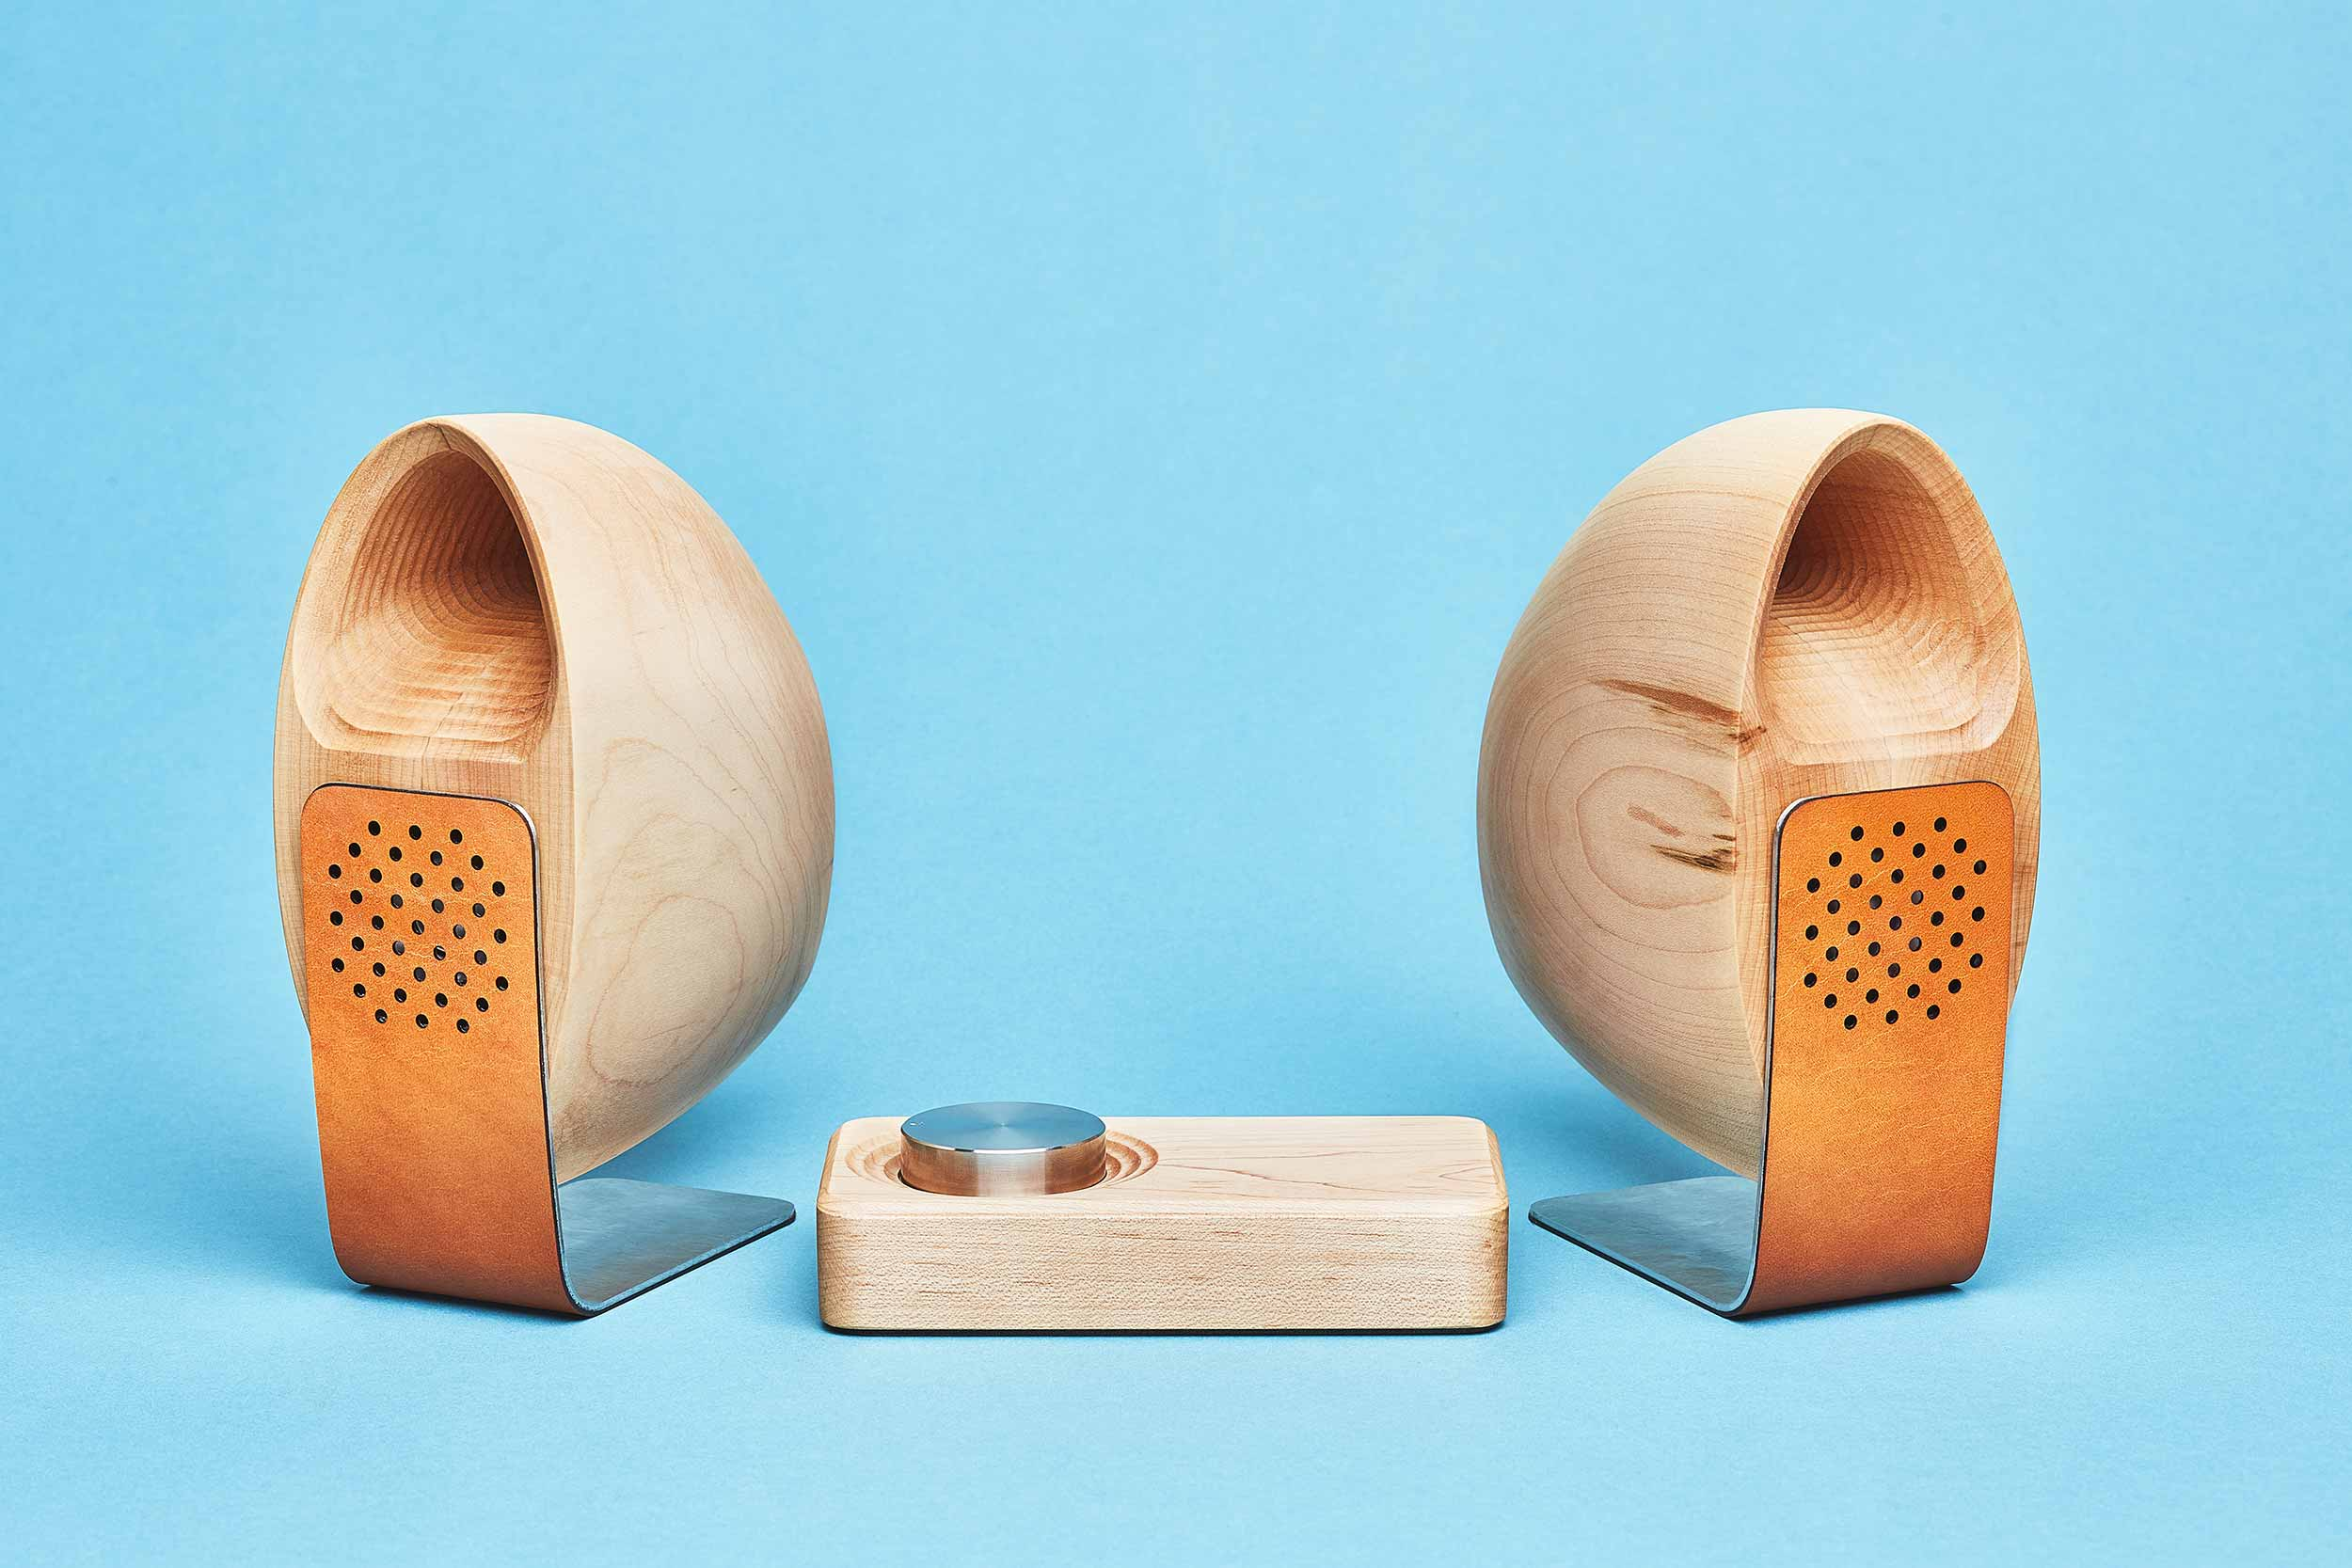 Grovemade Maple Speakers